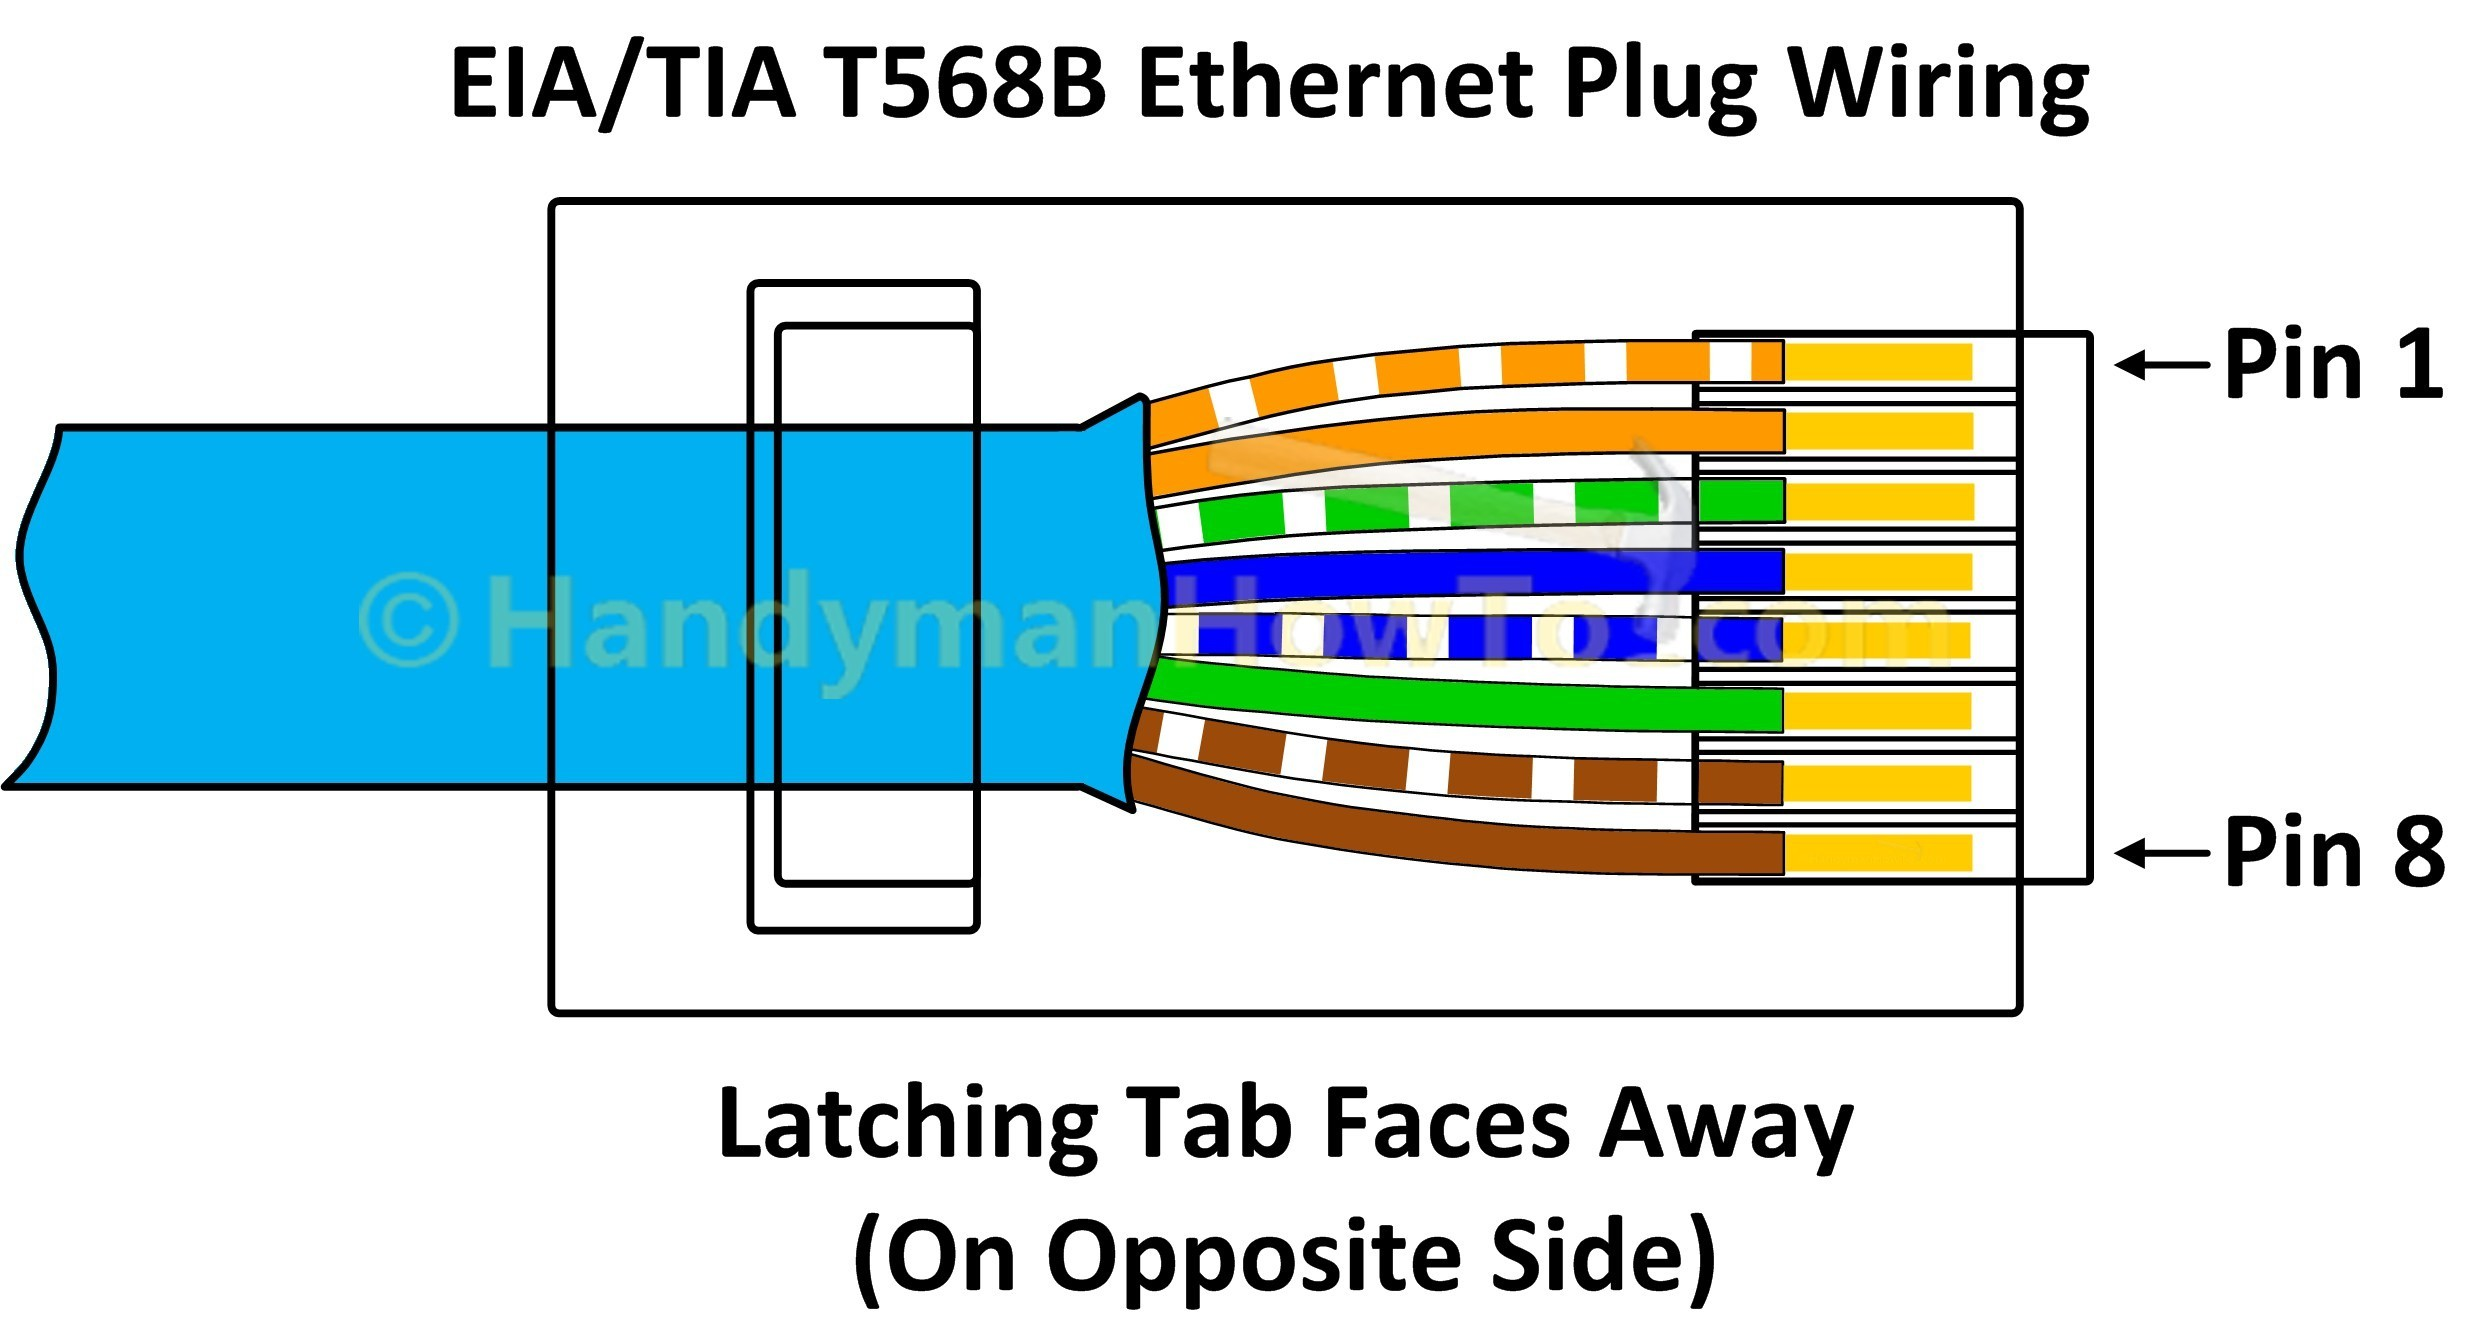 Network Wiring Diagram Rj45 Ethernet Cable Wiring Diagram originalstylophone Of Network Wiring Diagram Rj45